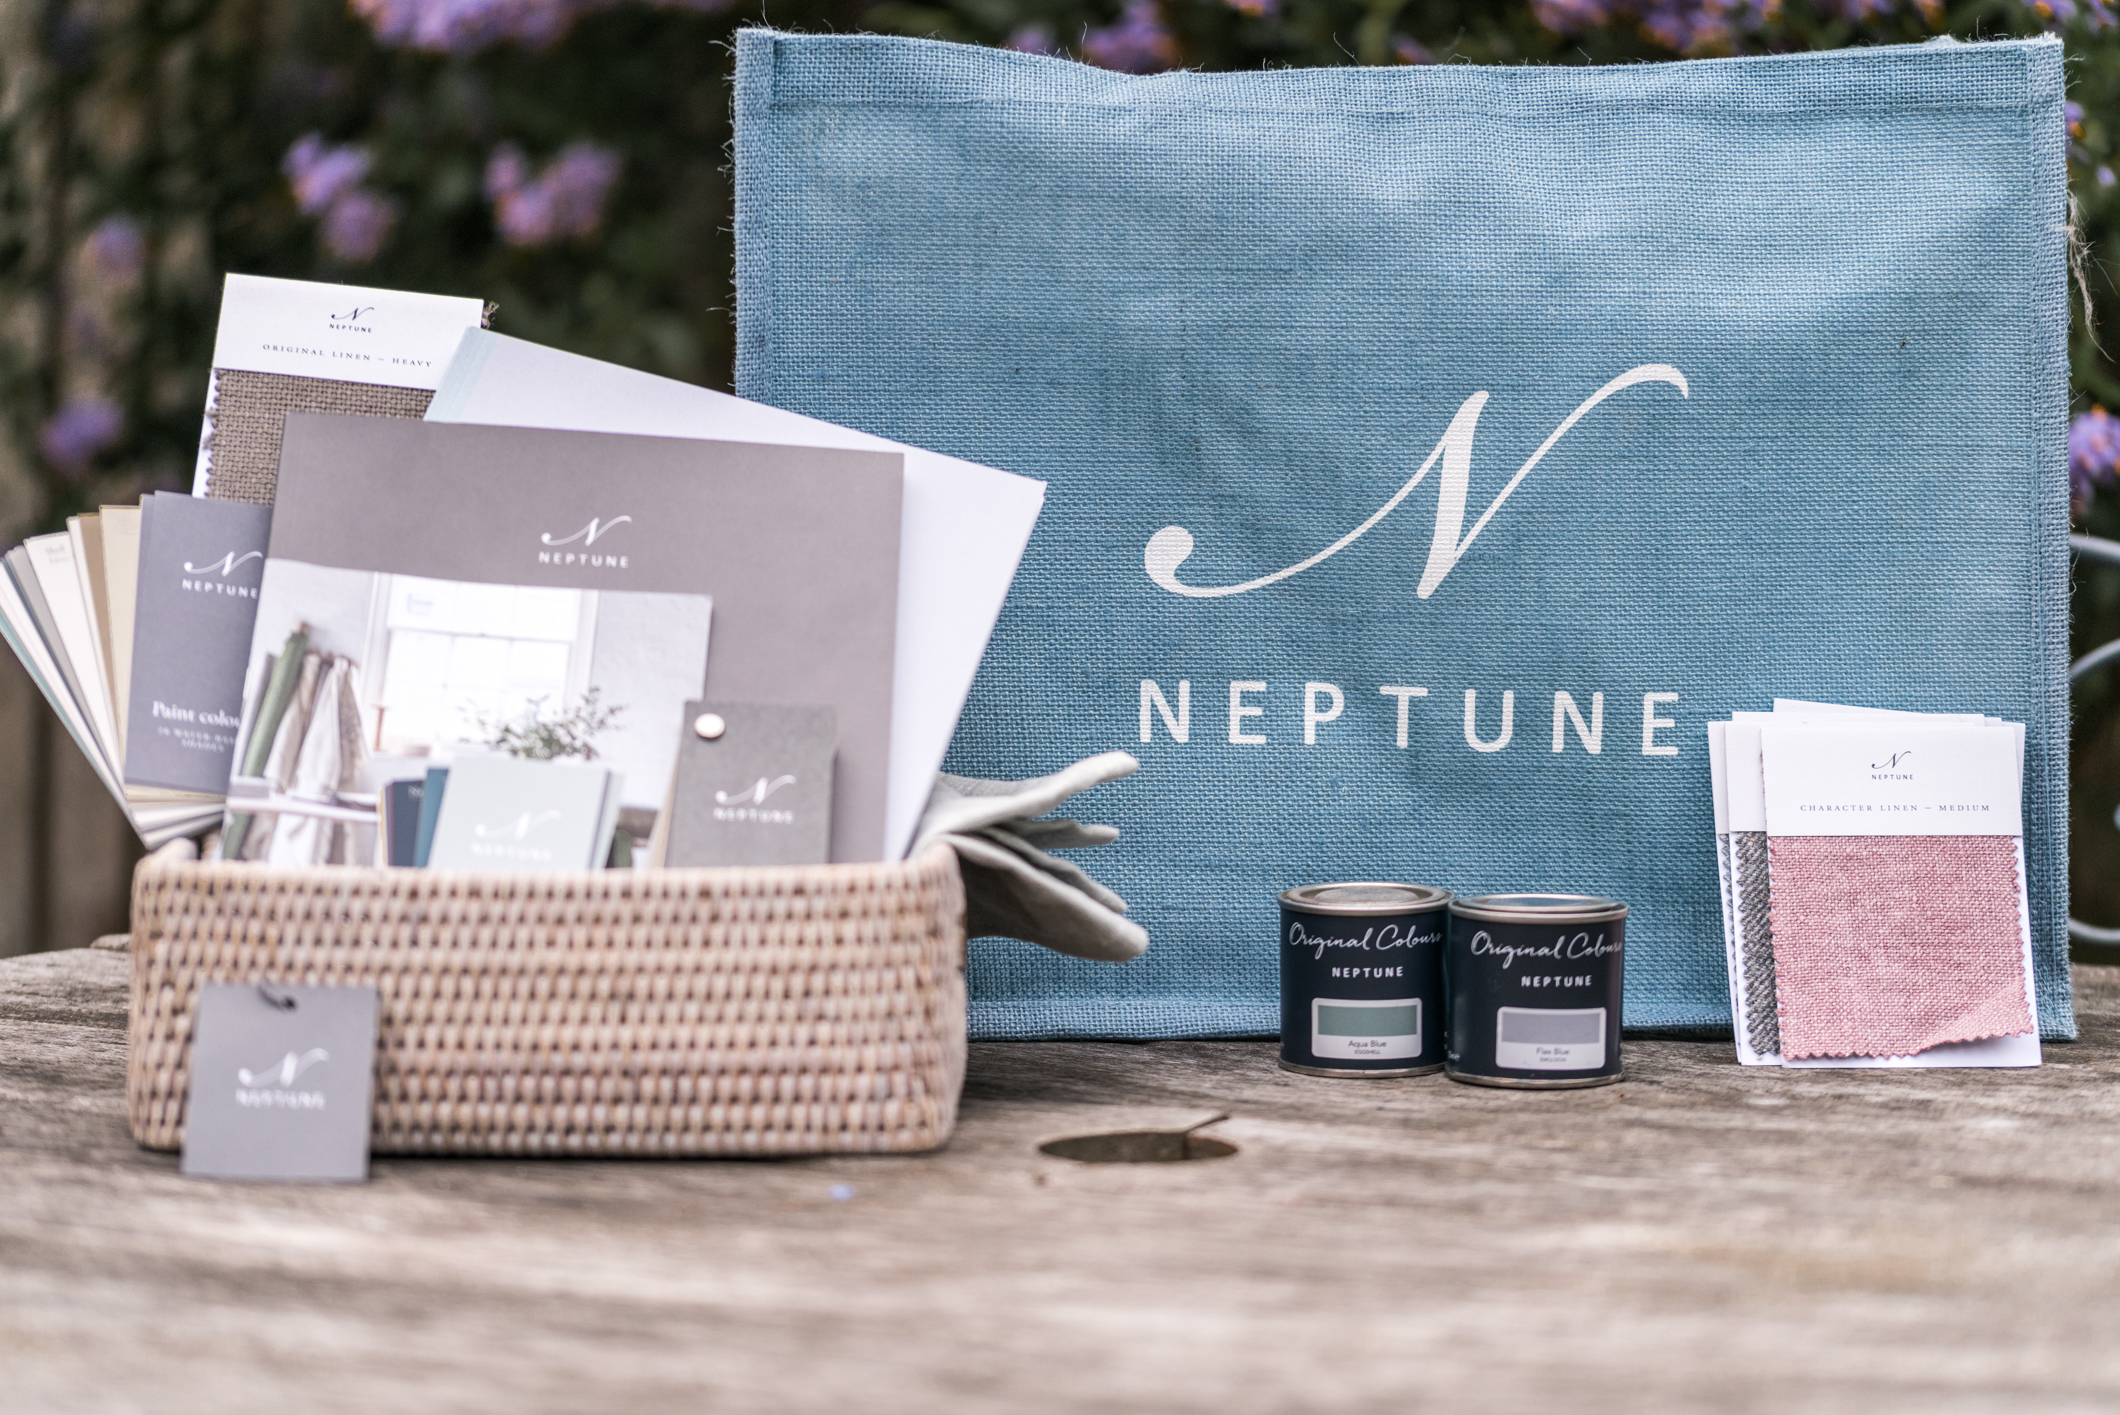 The Neptune Home Spring-Summer 2019 Marketing Campaign